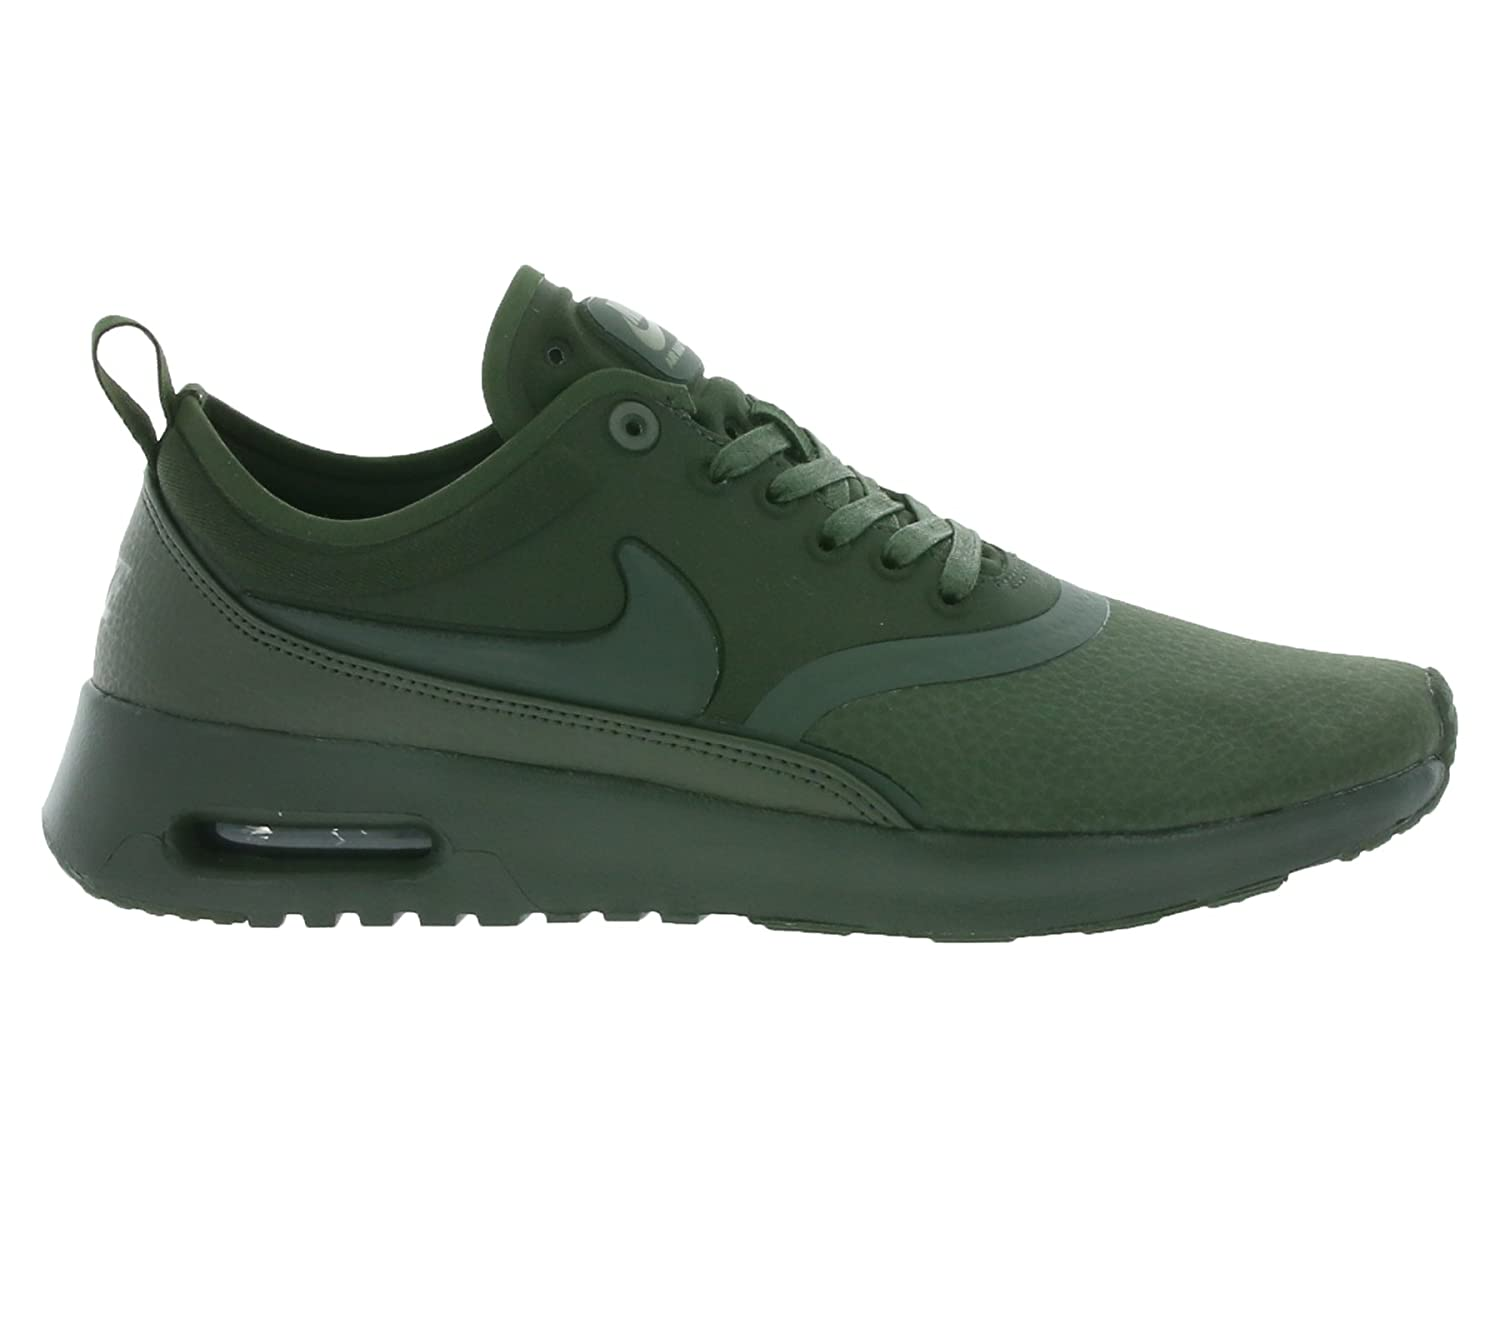 new concept 2a9be 6fe5c Amazon.com   Nike WMNS Air Max Thea Ultra Premium Lifestyle Sneakers Women  Sequoia Sequoia-Medium Olive New 848279-301 - 6.5   Fashion Sneakers